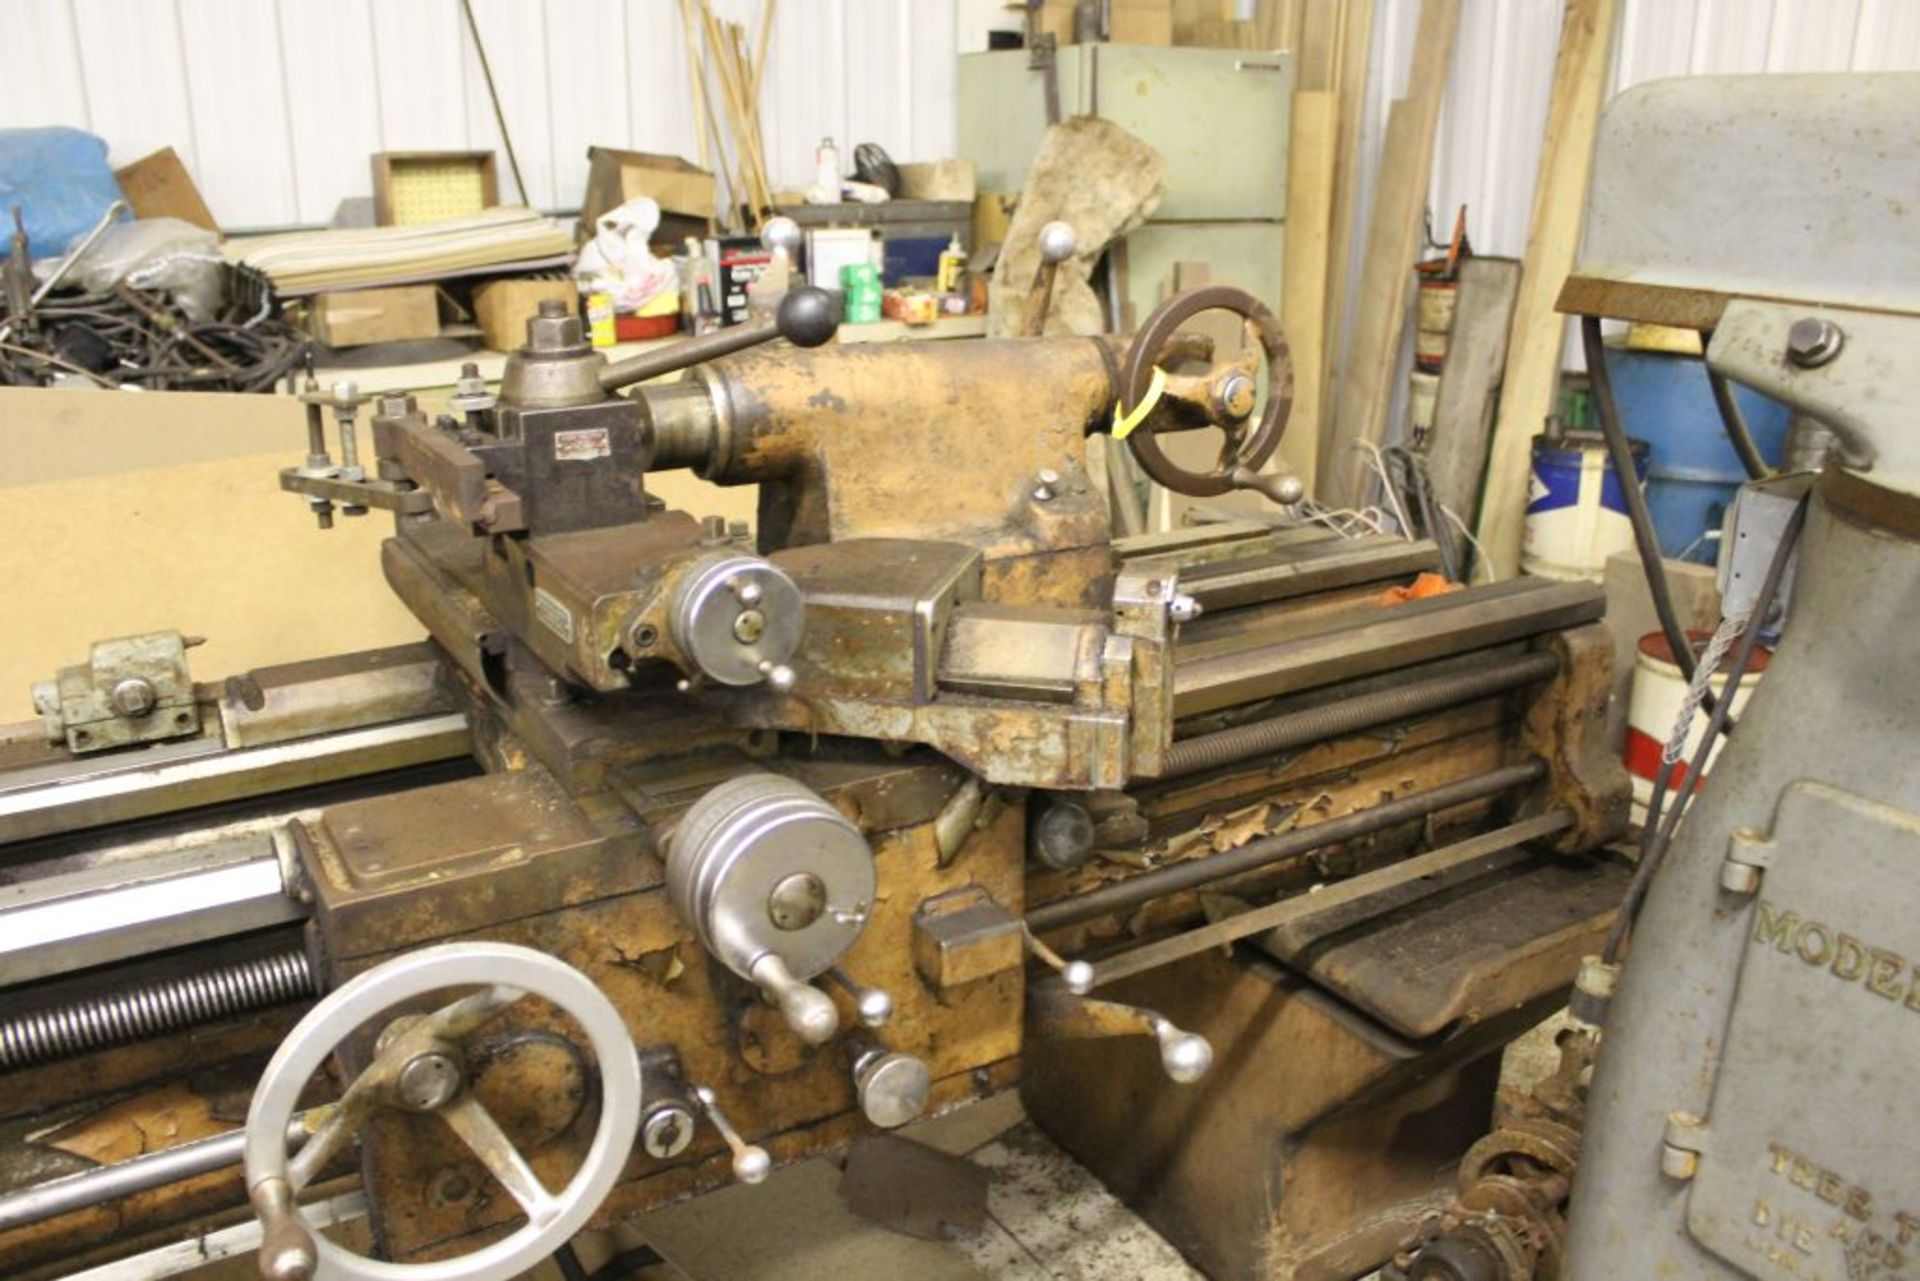 """1960 Monarch engine lathe, model 61, sn 44310-AT, 13 x 54, 20 1/2"""" swing, 79"""" bed, 55"""" center to - Image 7 of 8"""